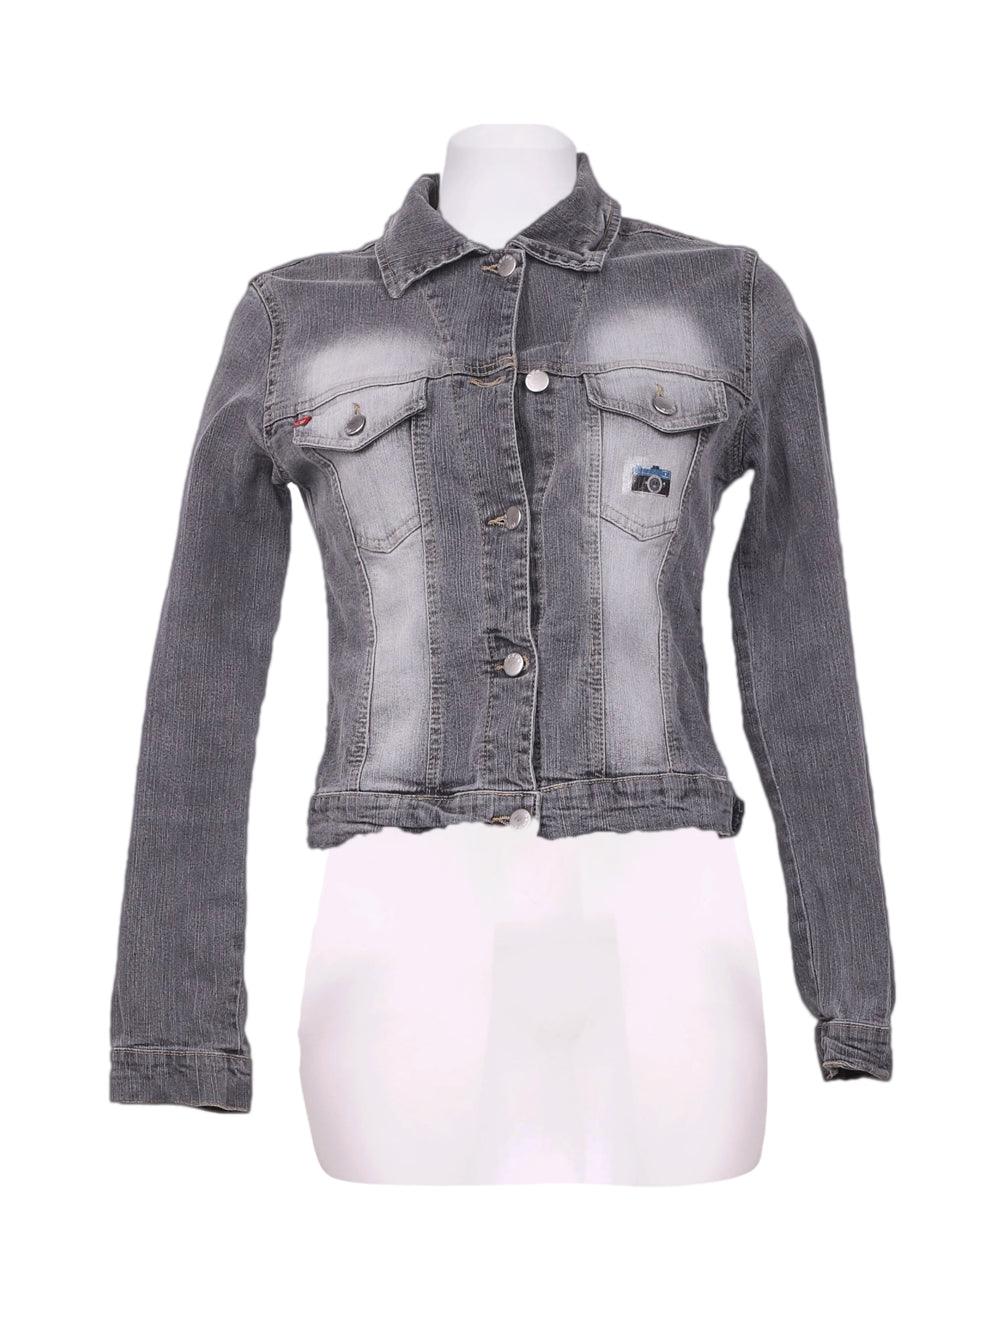 Front photo of Preloved nexos jeans Grey Woman's jacket - size 12/L